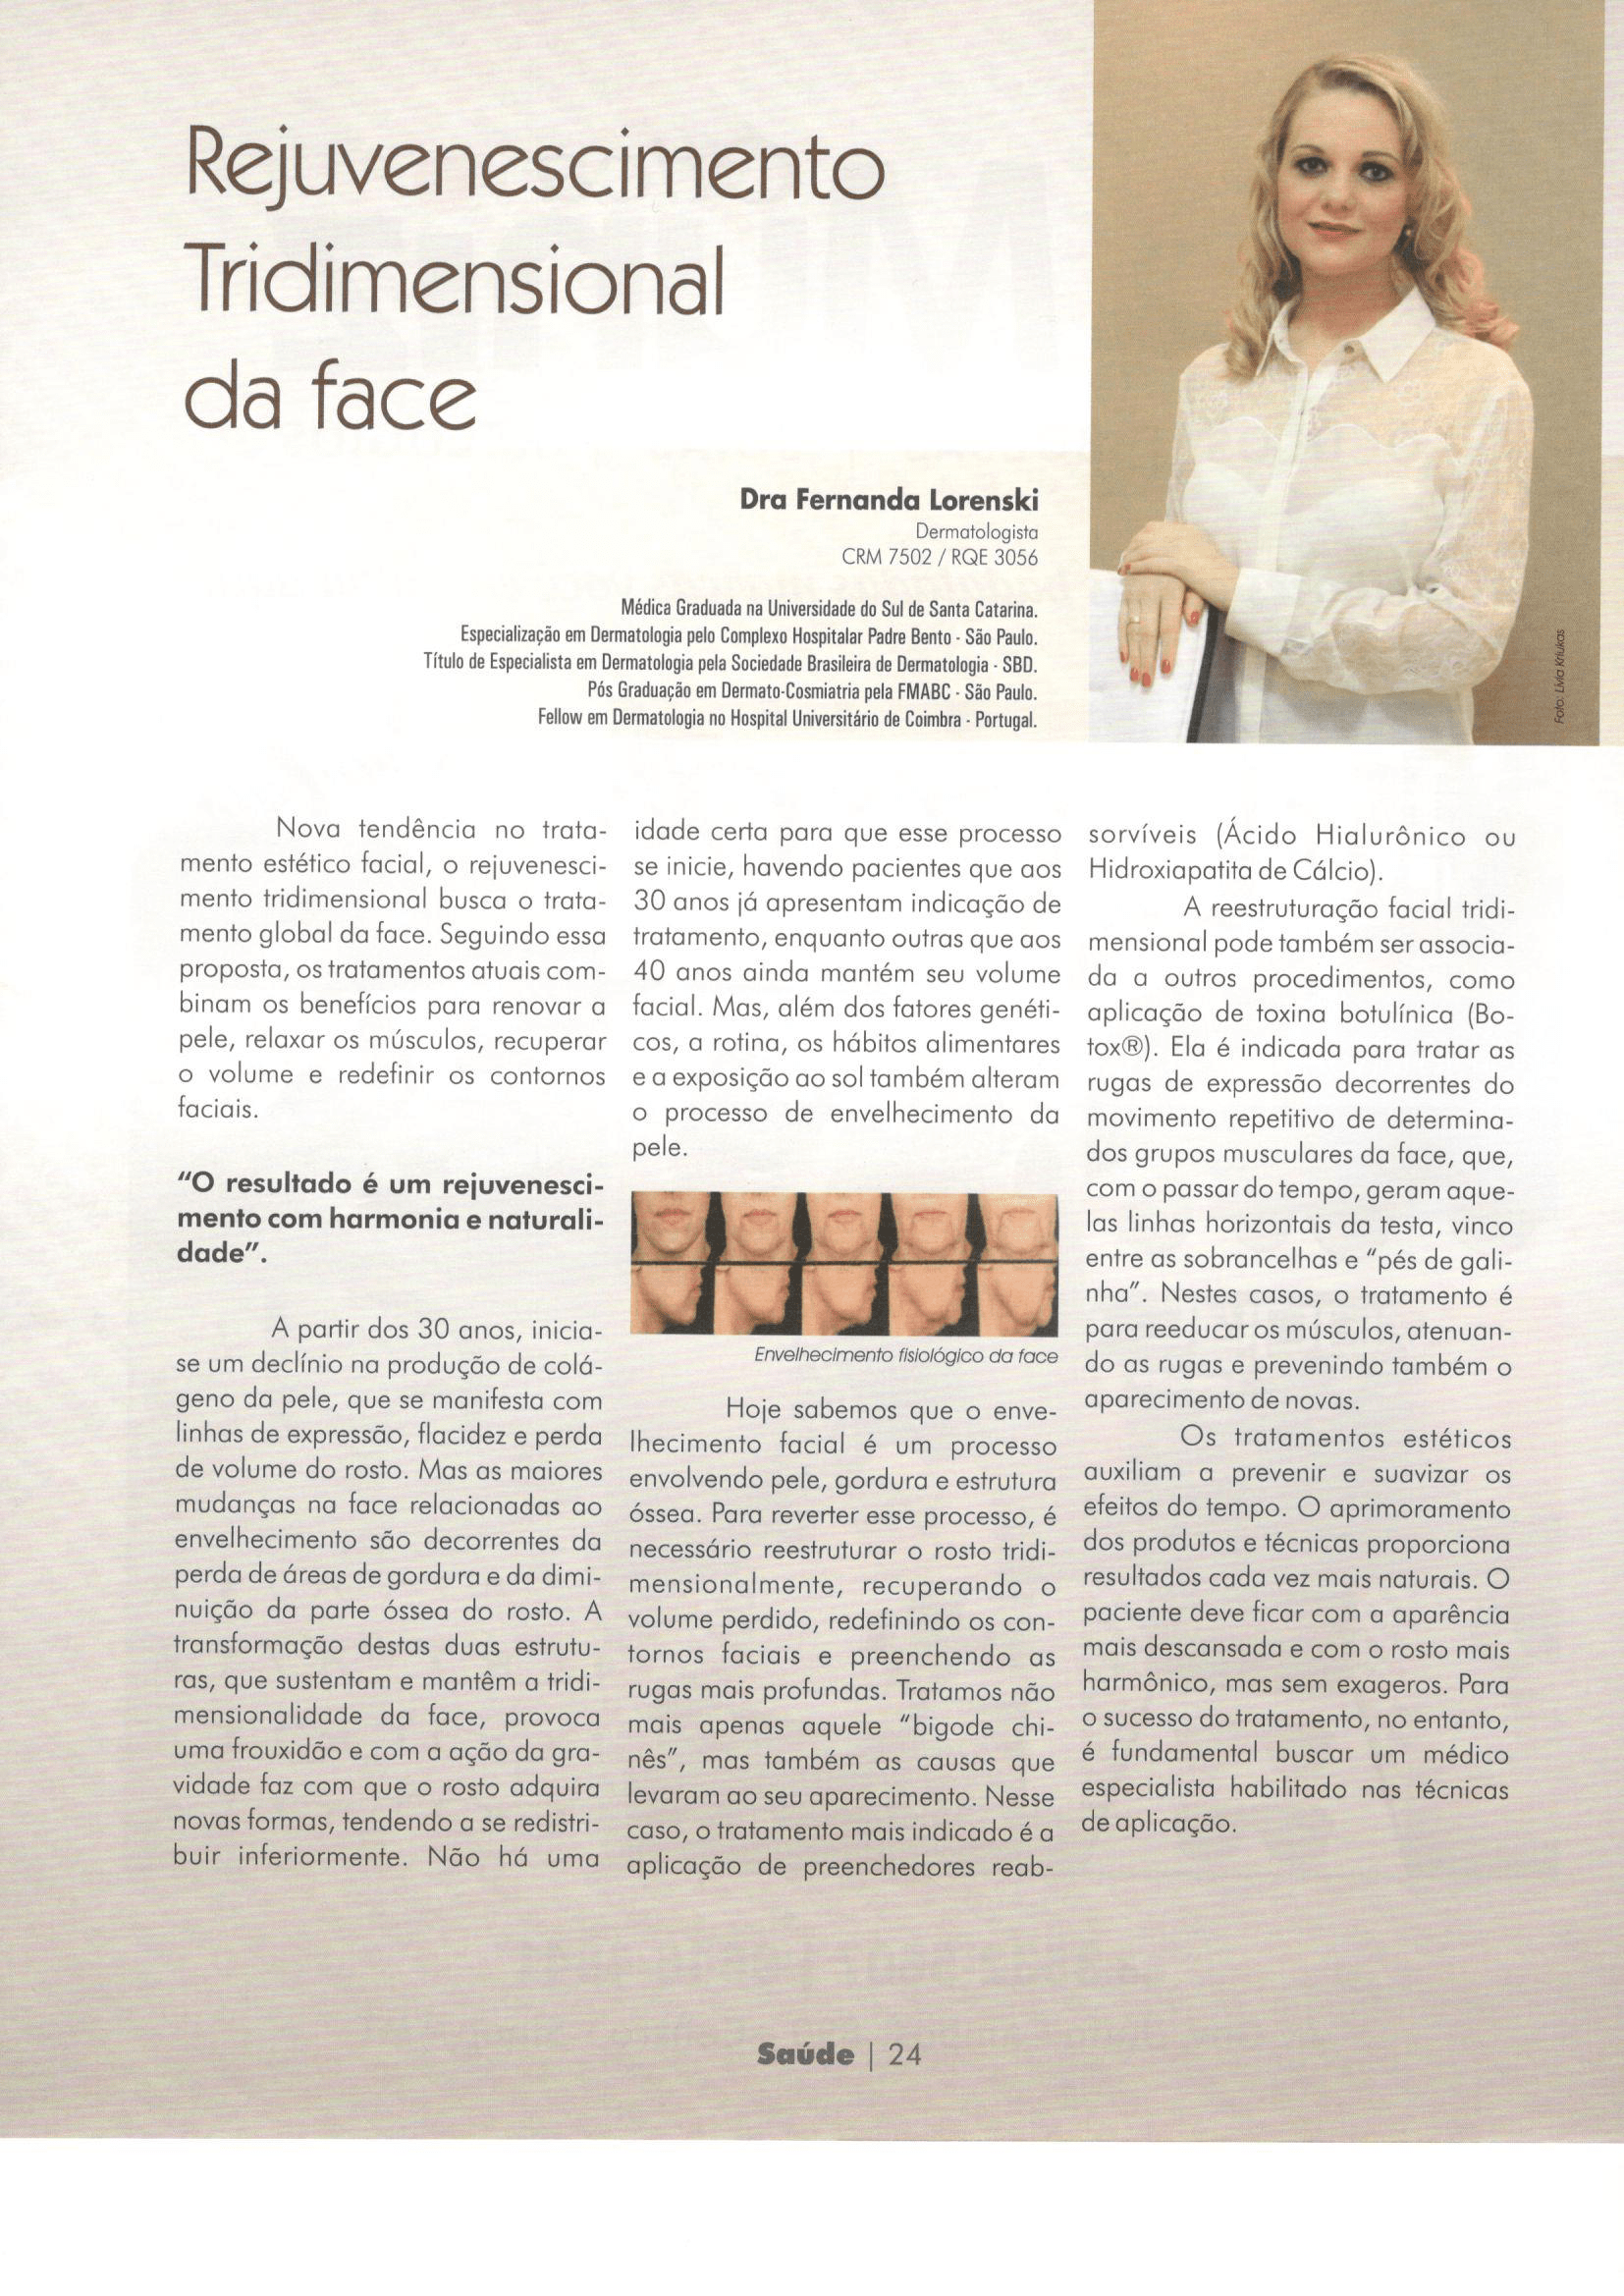 Revista Saude N 26, Nov-Dez 2014